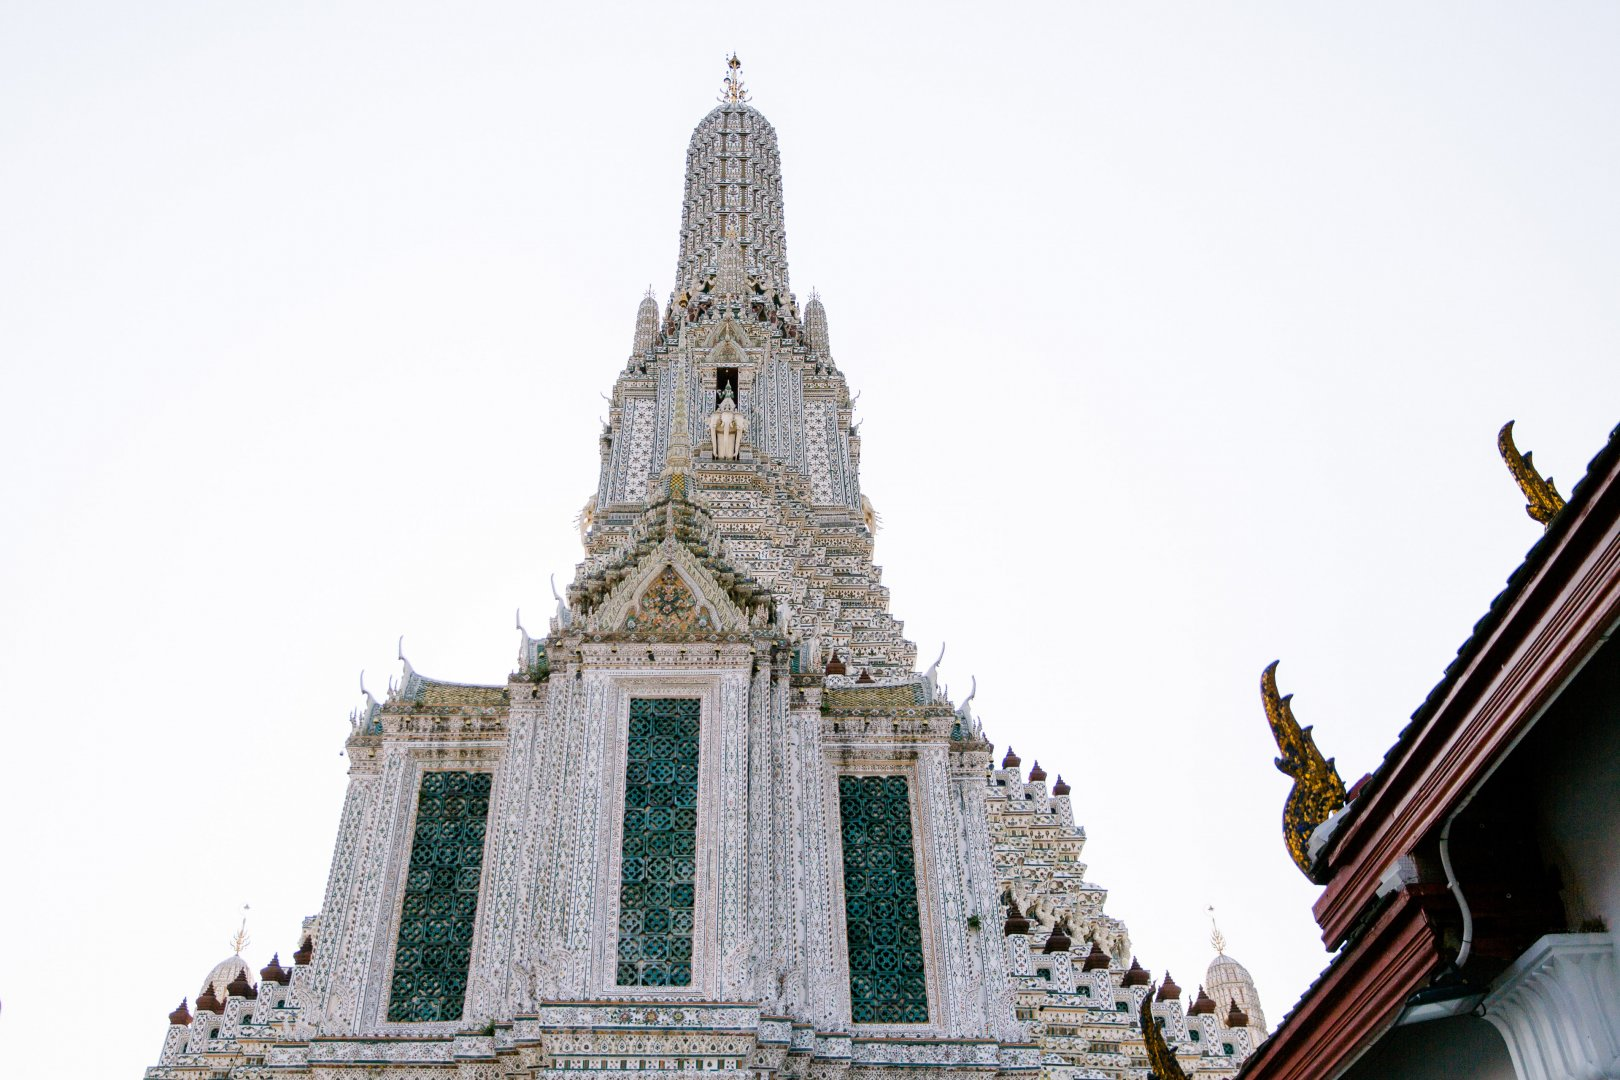 Landmark Spire Architecture Steeple Building Place of worship Temple Facade Tower Sky Wat Temple City Historic site Monument Tourist attraction Classical architecture Medieval architecture Tourism Church Cathedral Metropolis Vacation National historic landmark